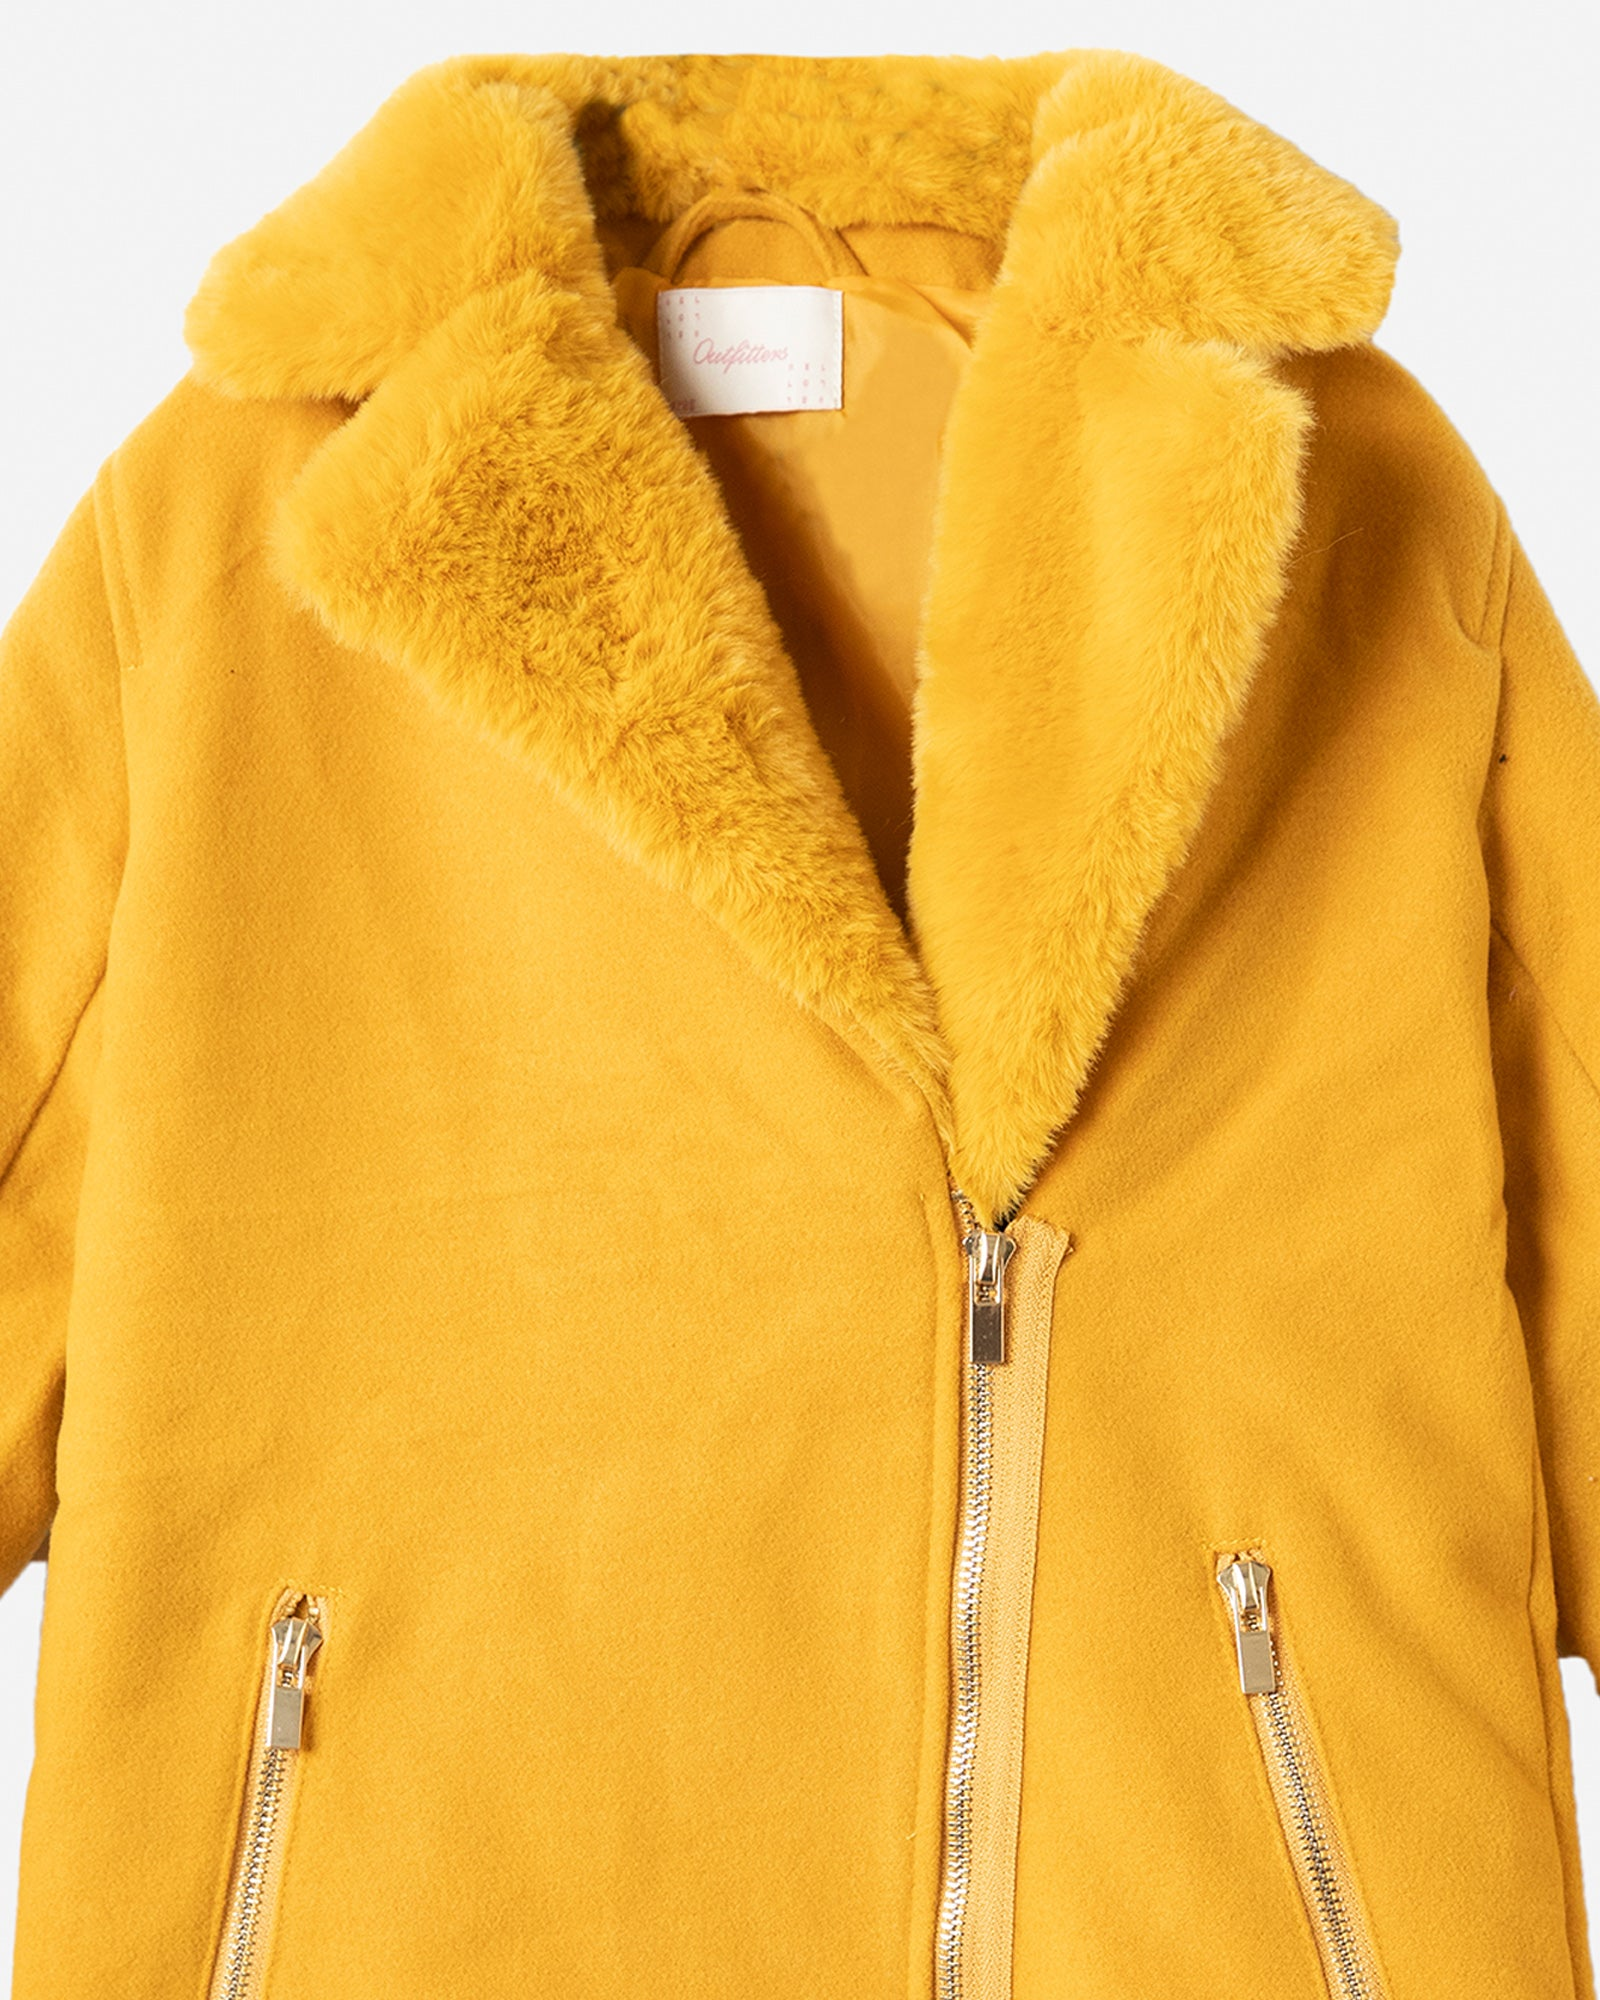 Sueded Jacket with Fur